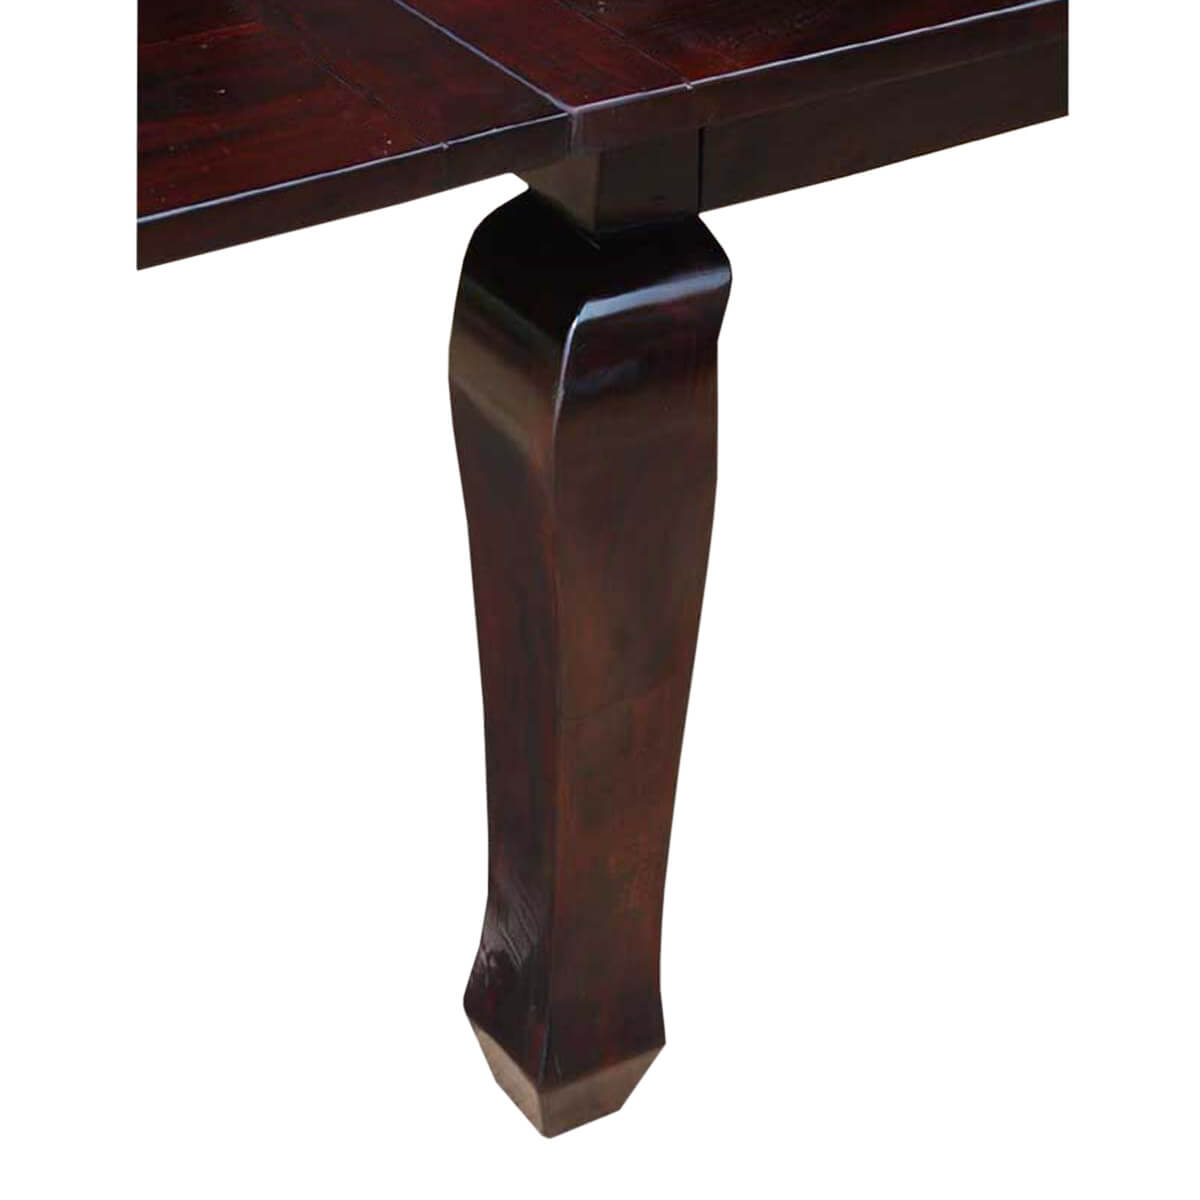 Dining table 10 people dining table size for 10 people table size